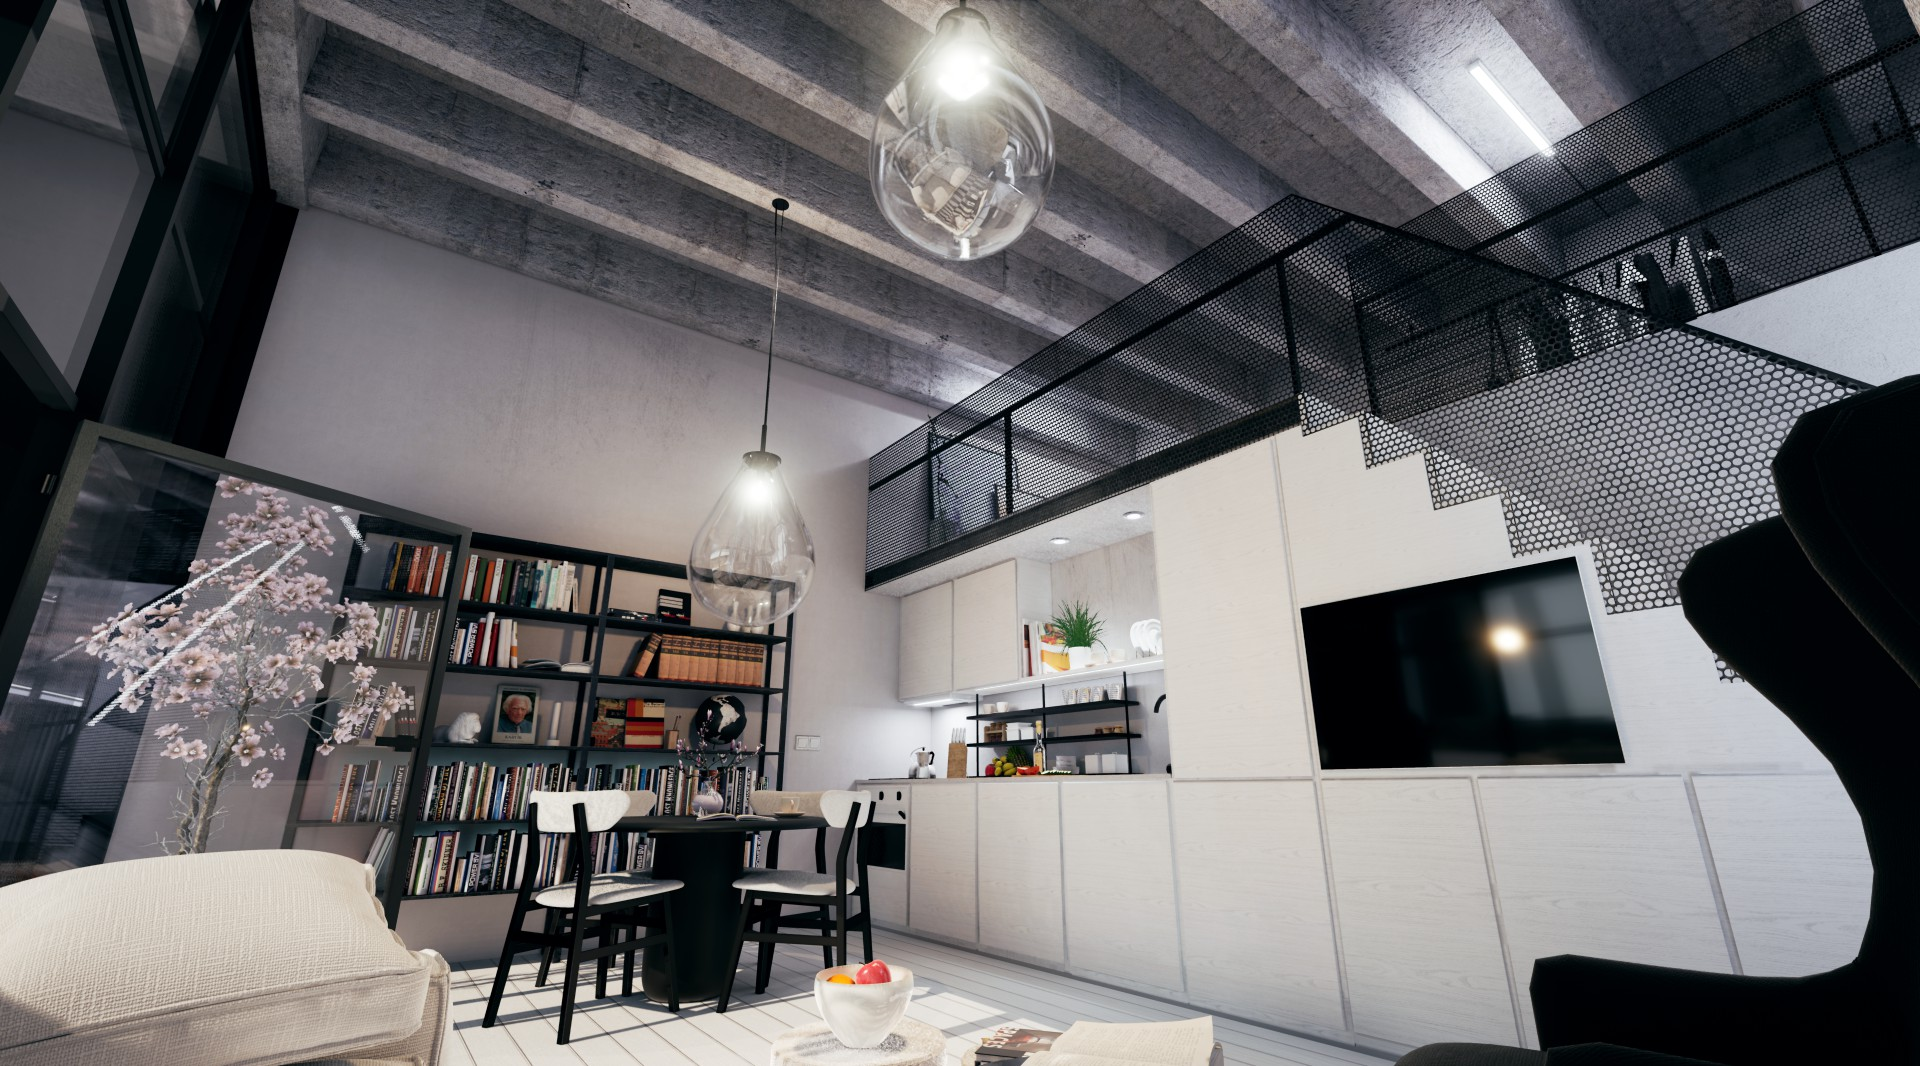 Loft interior design options available + 50m<sup>2</sup> by Ivanka Kowalski. Floor plan may differ to actual plan.